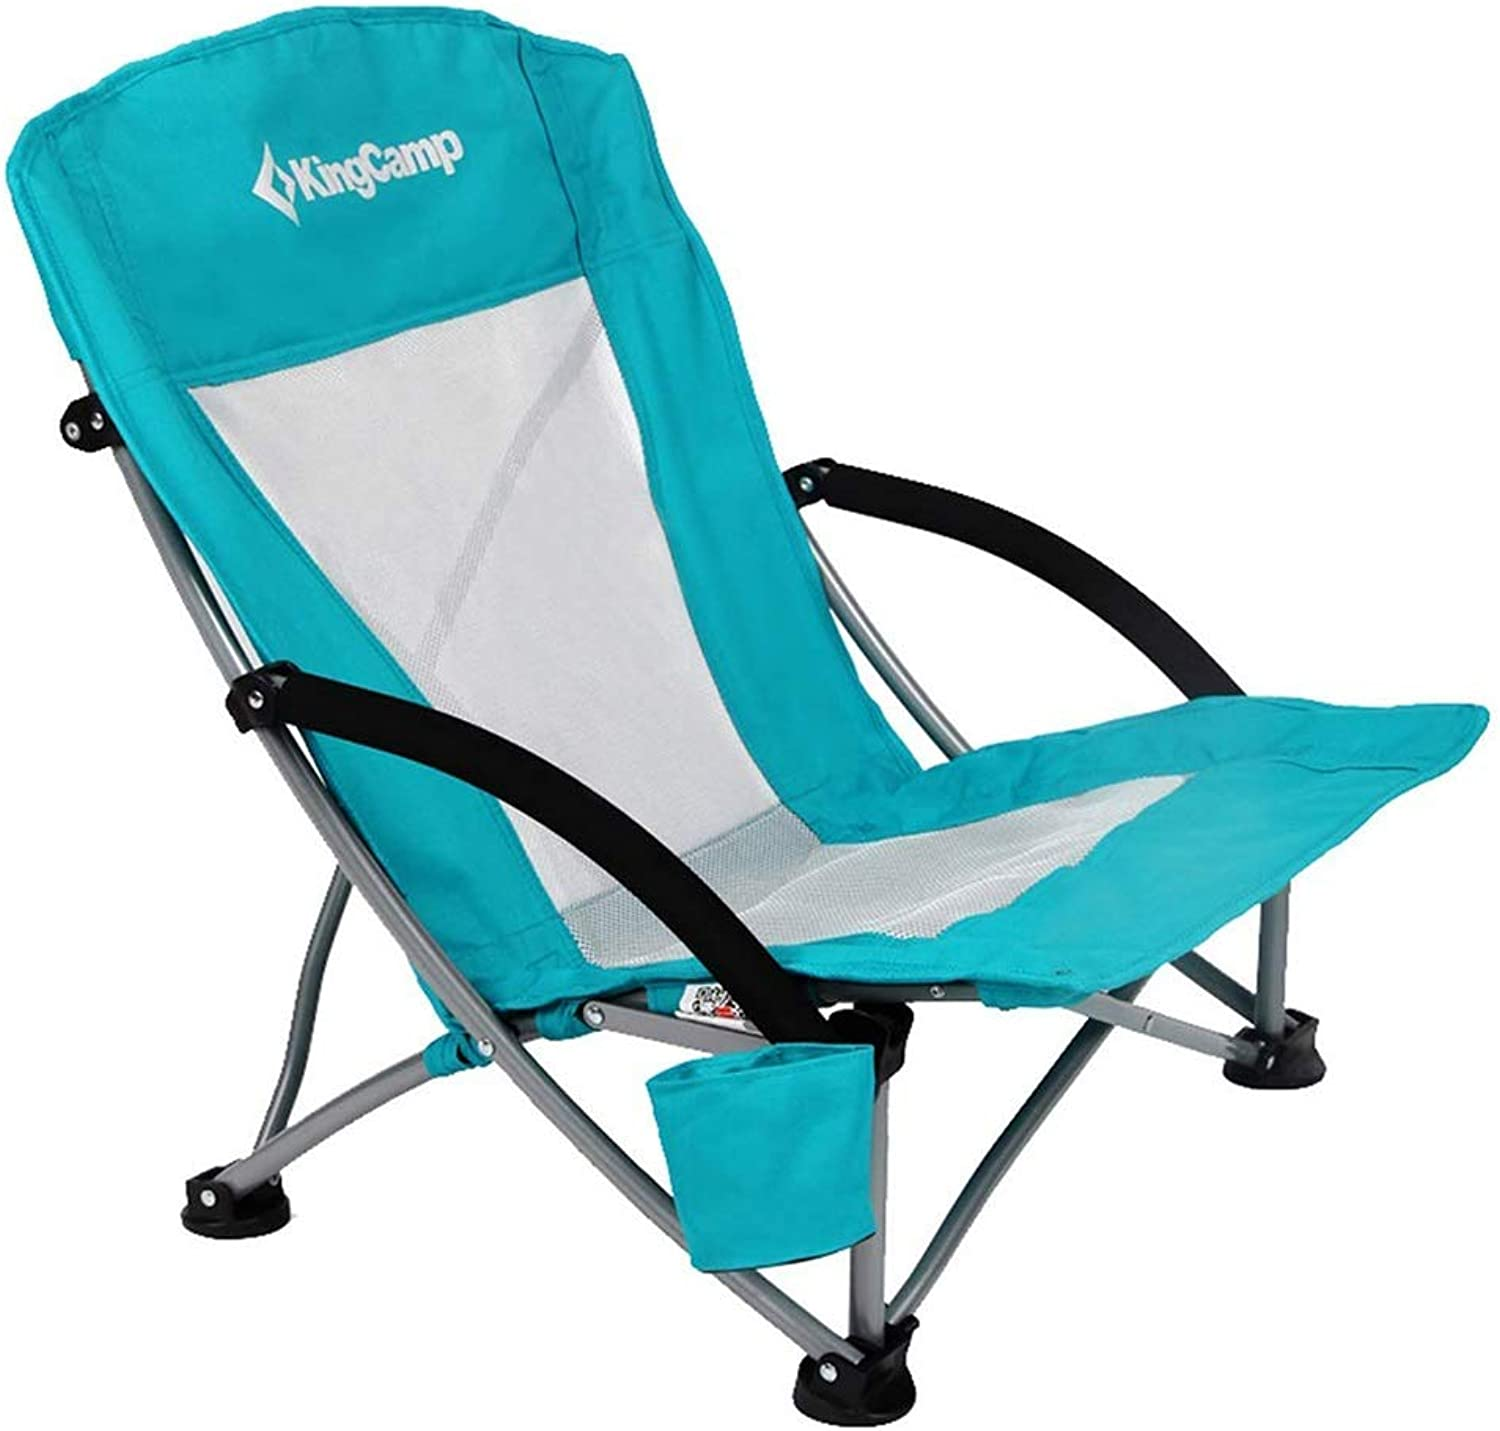 Fishing Chair Portable Folding Chair Lunch Break Chair Backrest Short Beach Chair Camping Chair with Mesh Backrest Load Capacity 130kg (color   Green, Size   58  59  67cm)